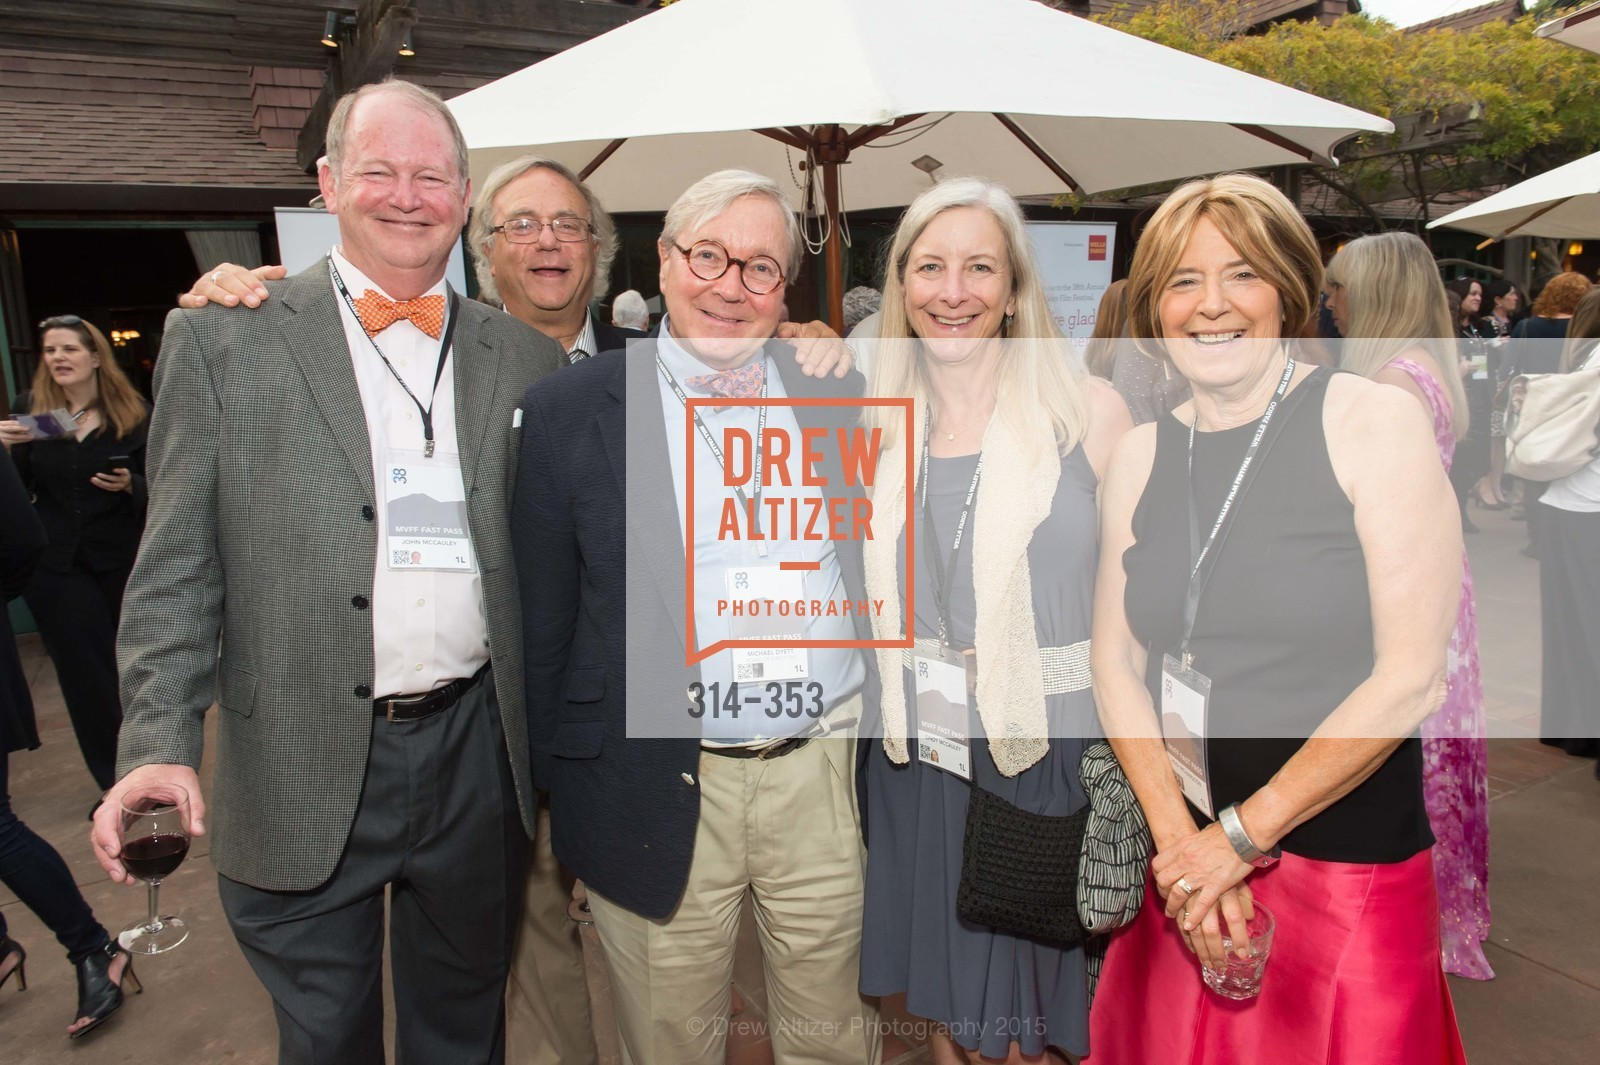 John McCollin, Tom Wachtel, Michael Dyett, Cindy McCollin, Heidi Richardson, Mill Valley Film Festival Opening Night VIP Reception, Outdoor Art Club. 1 W Blithedale Ave, October 8th, 2015,Drew Altizer, Drew Altizer Photography, full-service agency, private events, San Francisco photographer, photographer california